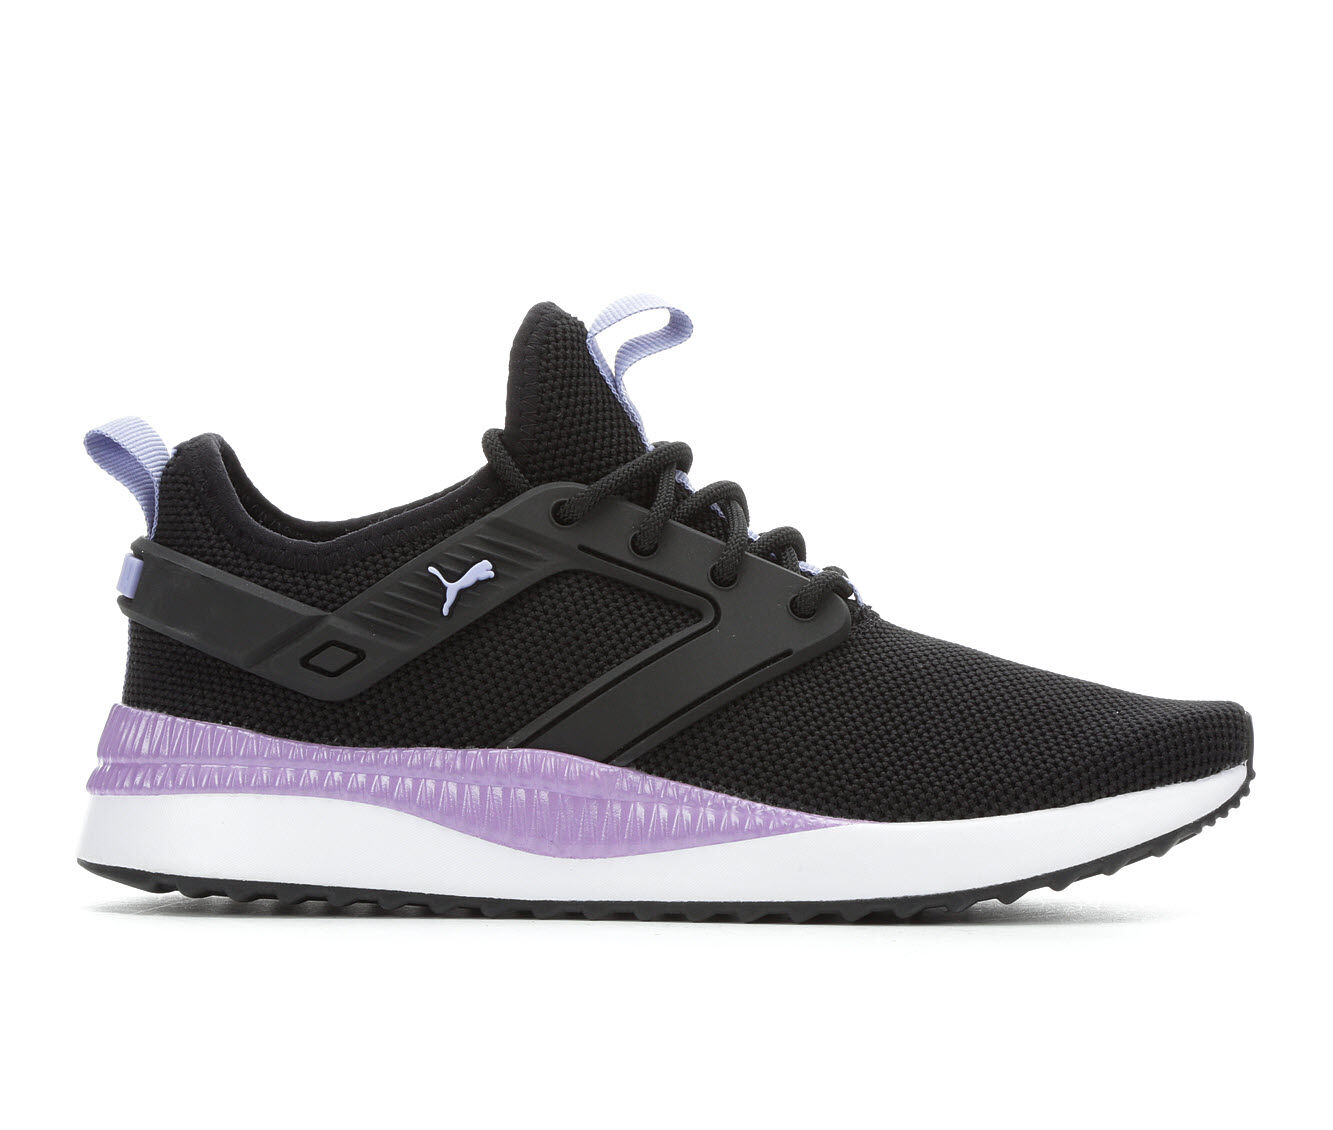 Women's Puma Pacer Next Excel Sneakers Black/Purple/Wh